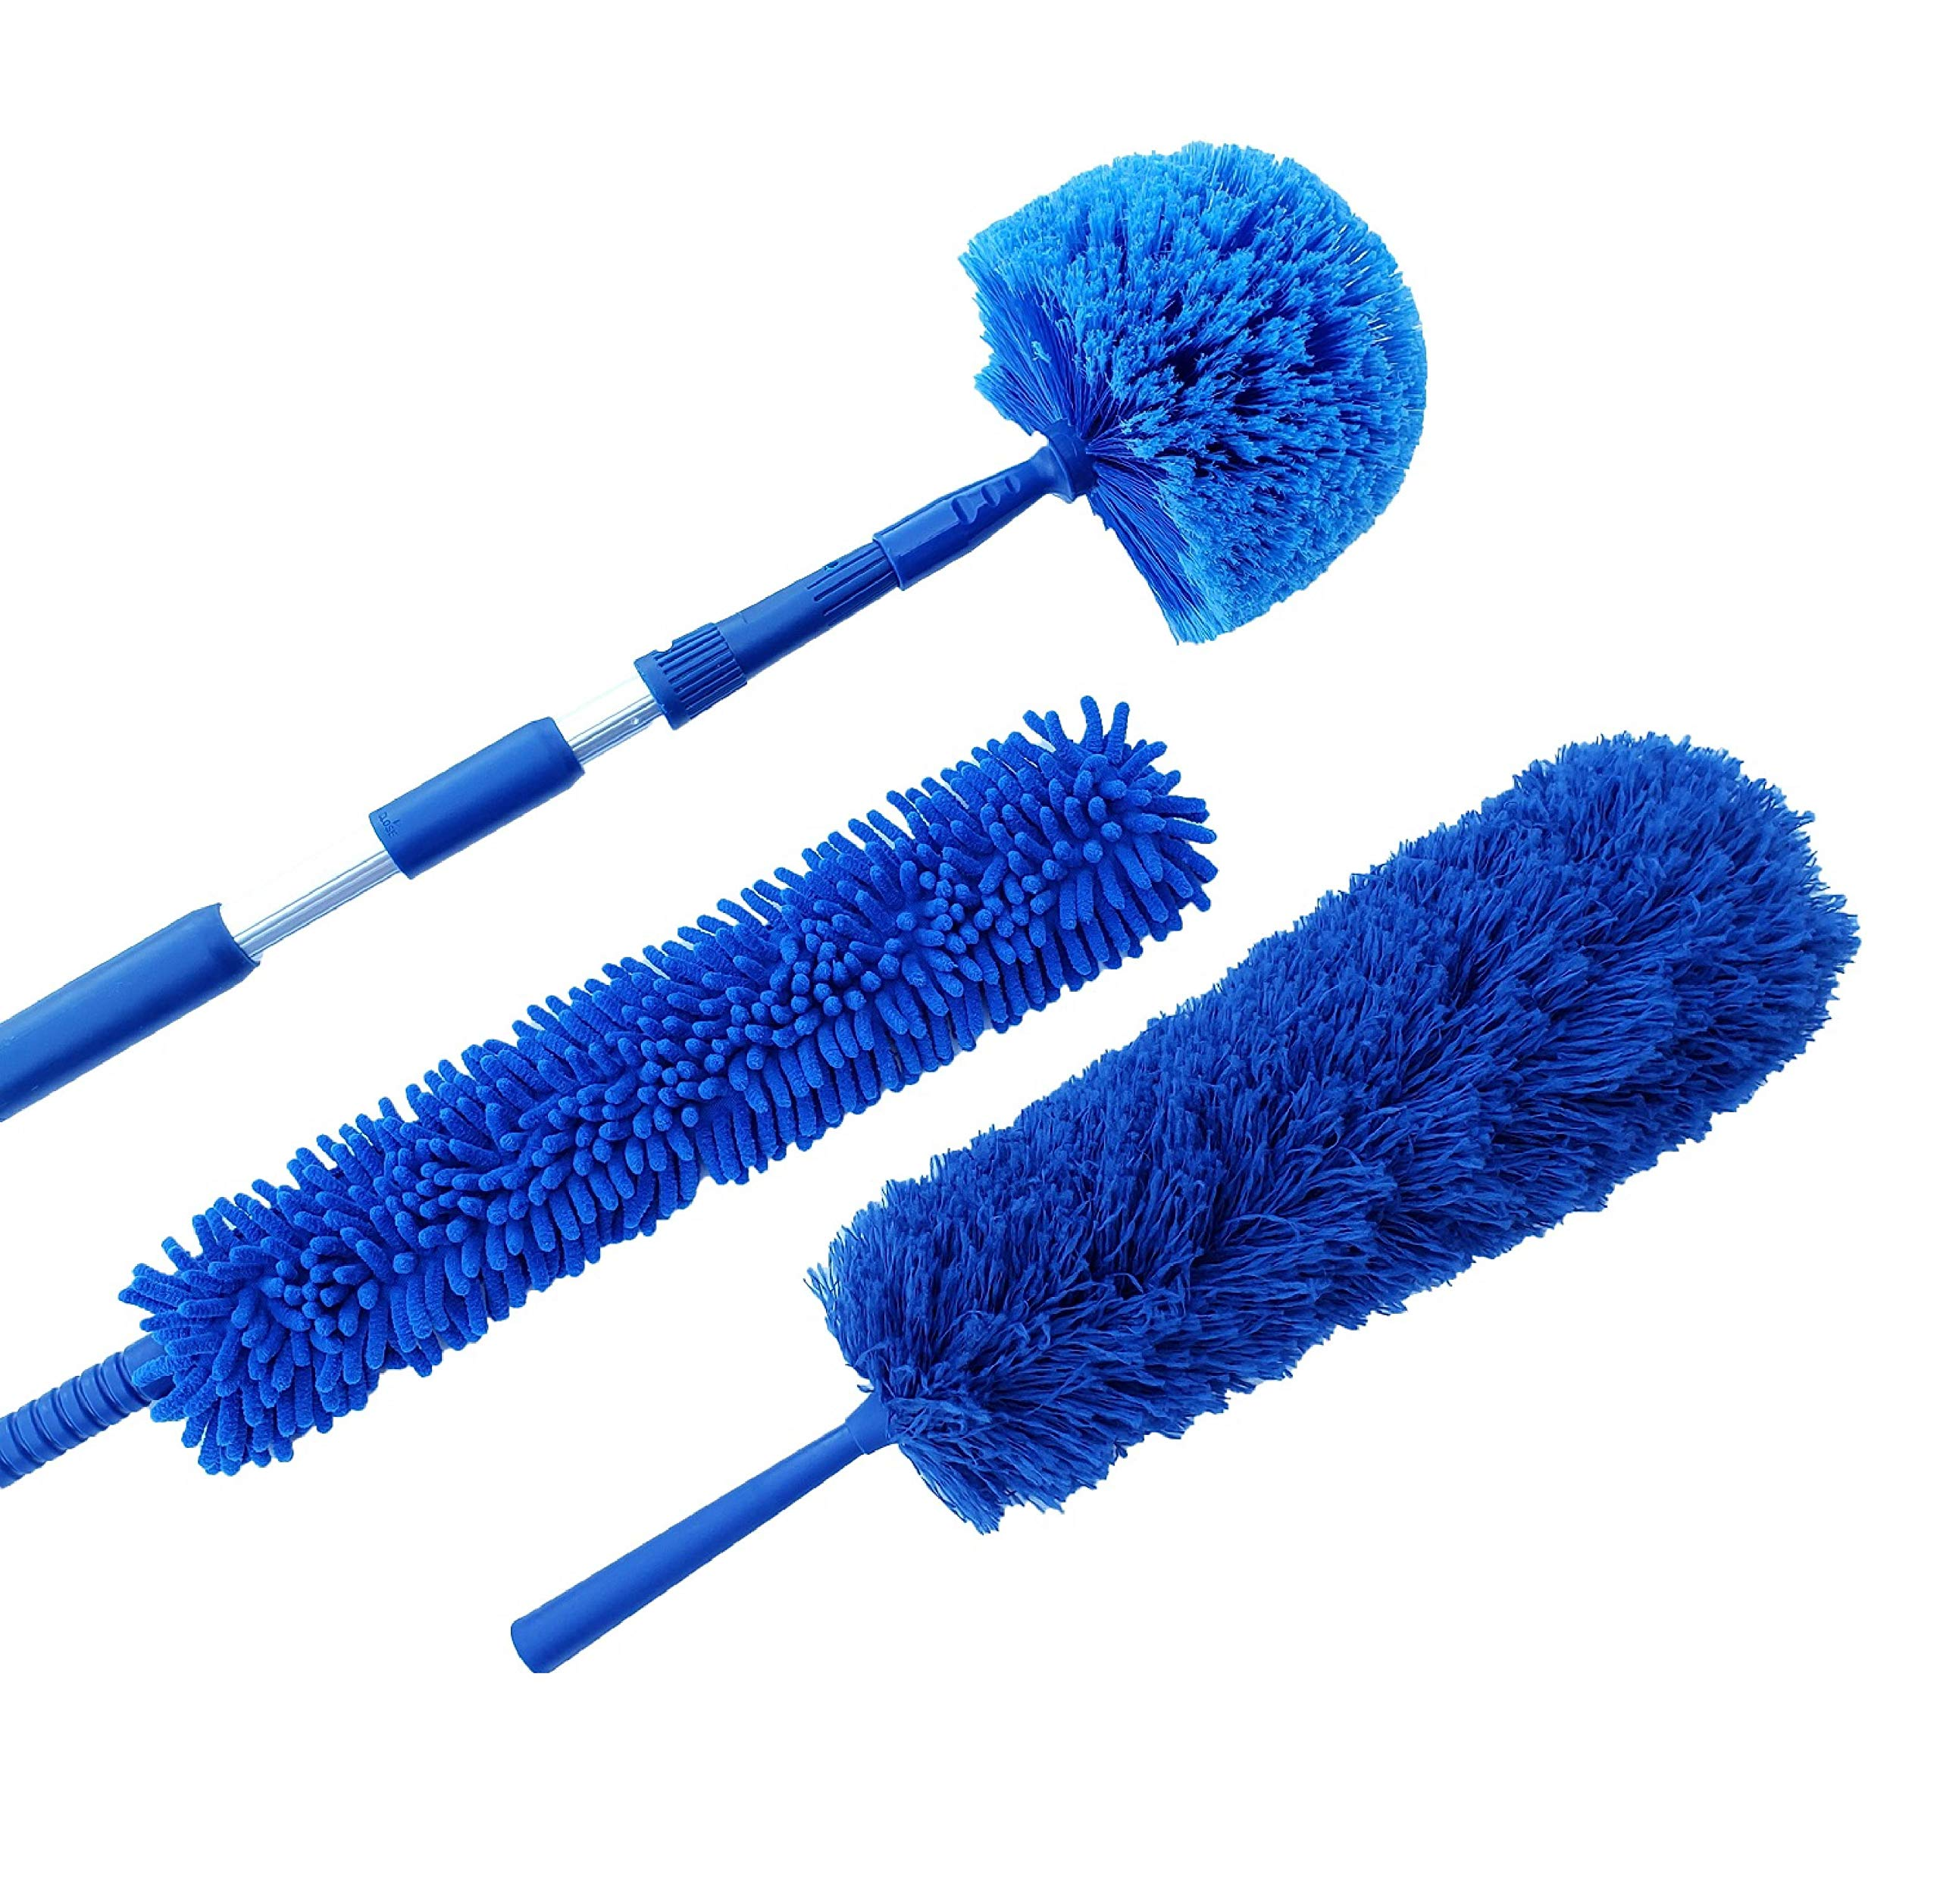 U.S. Duster Company Triple Action Microfiber Duster Set, Aluminum Extension Rod, Blue Micro Duster, Cobweb Duster, Plus Chenille Duster, Extend 18-20 feet Cleaning High Ceilings, Cathedral Ceilings by U.S. DUSTER COMPANY DUST FREE SOLUTIONS